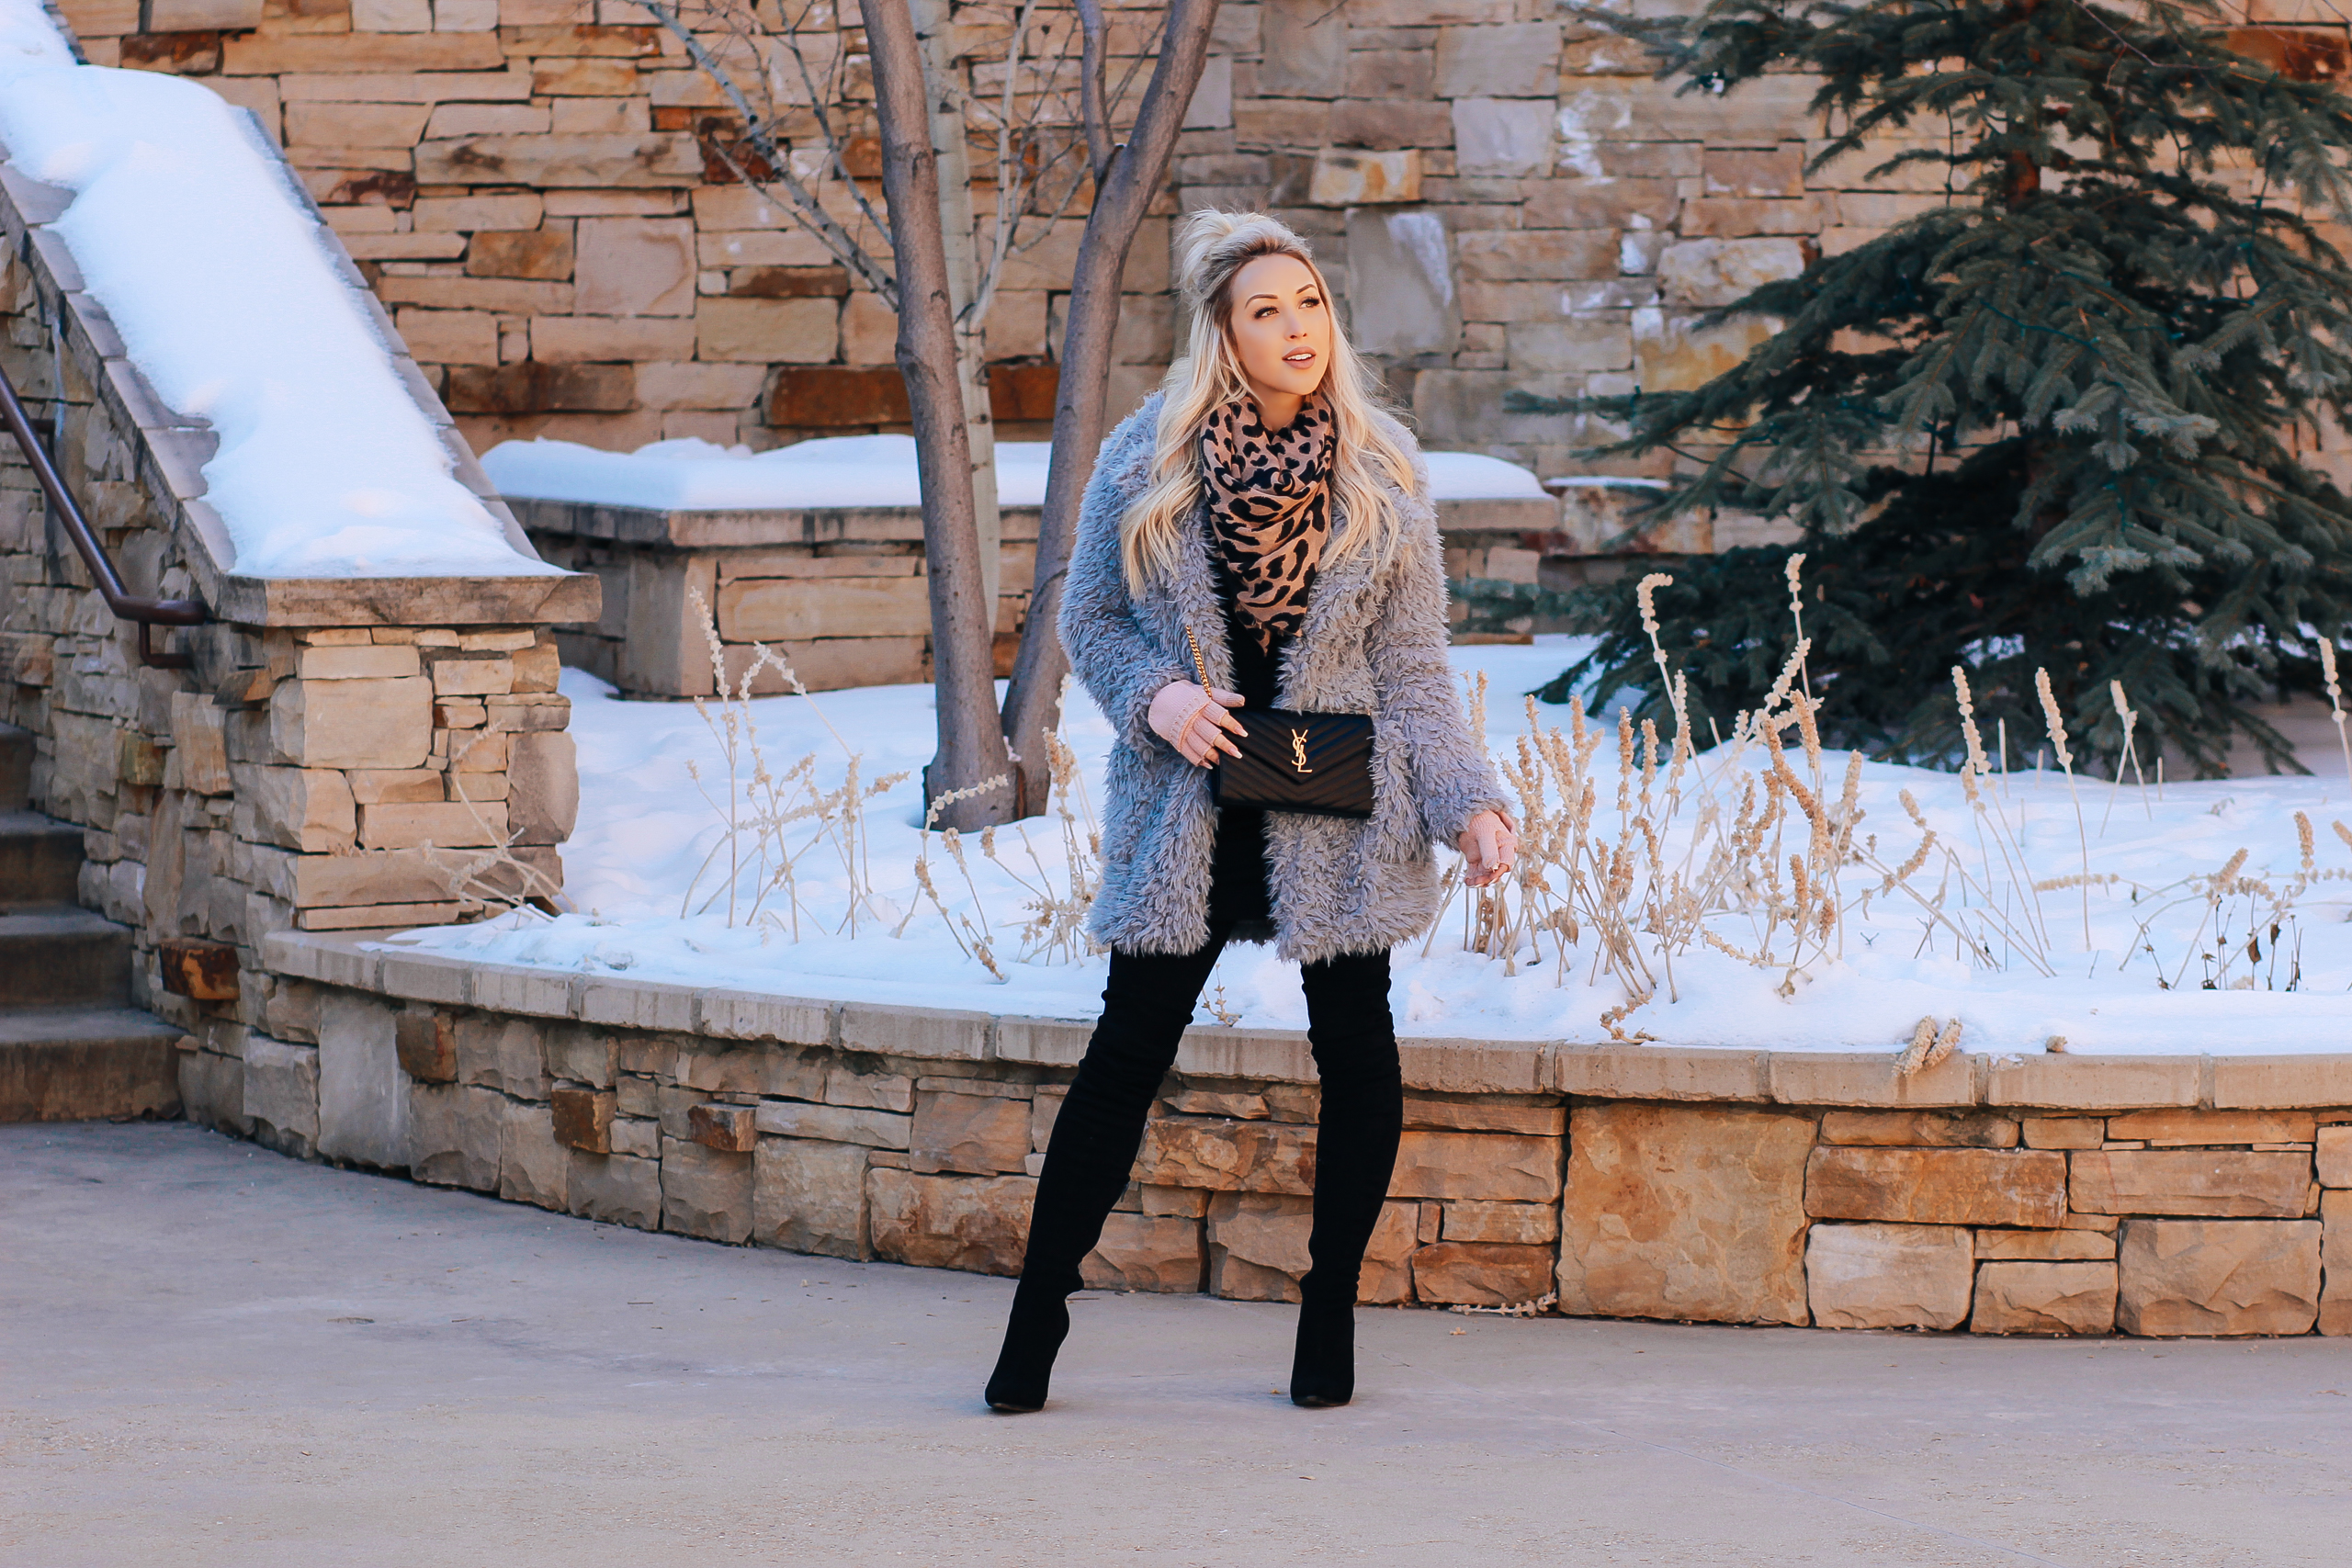 Blondie in the City | Blue Faux Fur Winter Coat, Leopard scarf, YSL Bag, Black Thigh High Boots | Winter Fashion